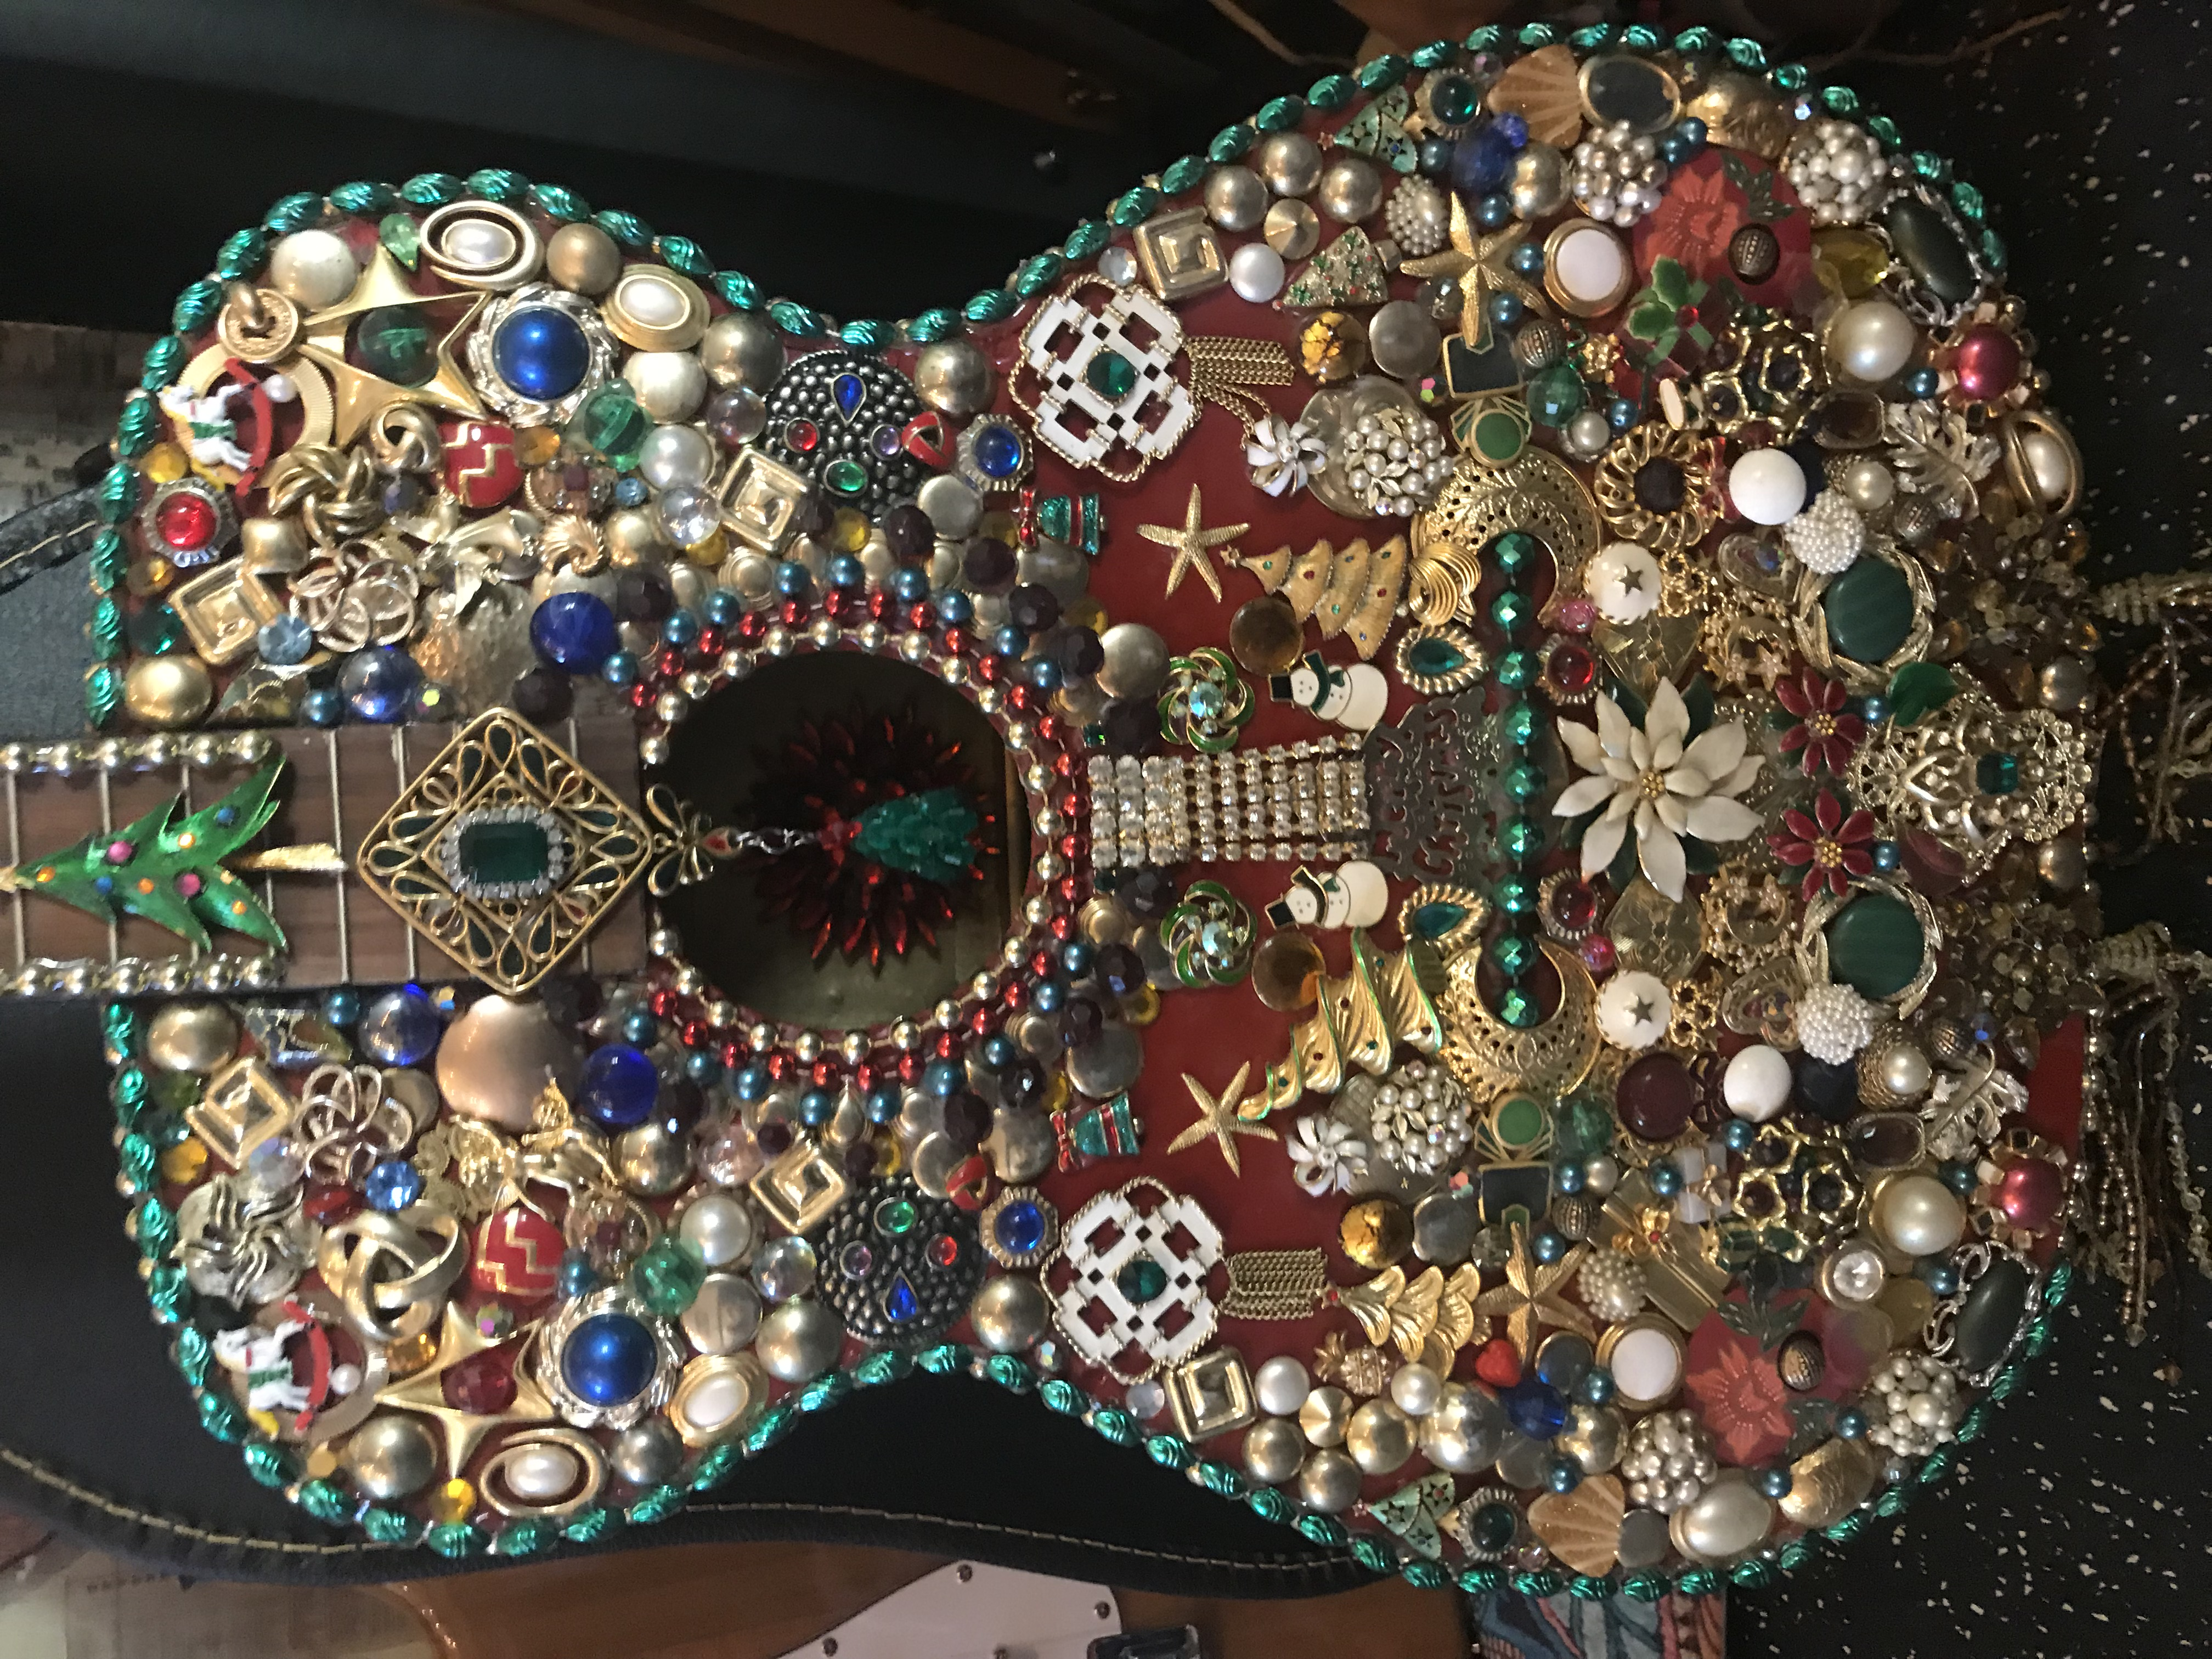 Decorated guitars by artisan Gloria Woods from North Kingstown, RI